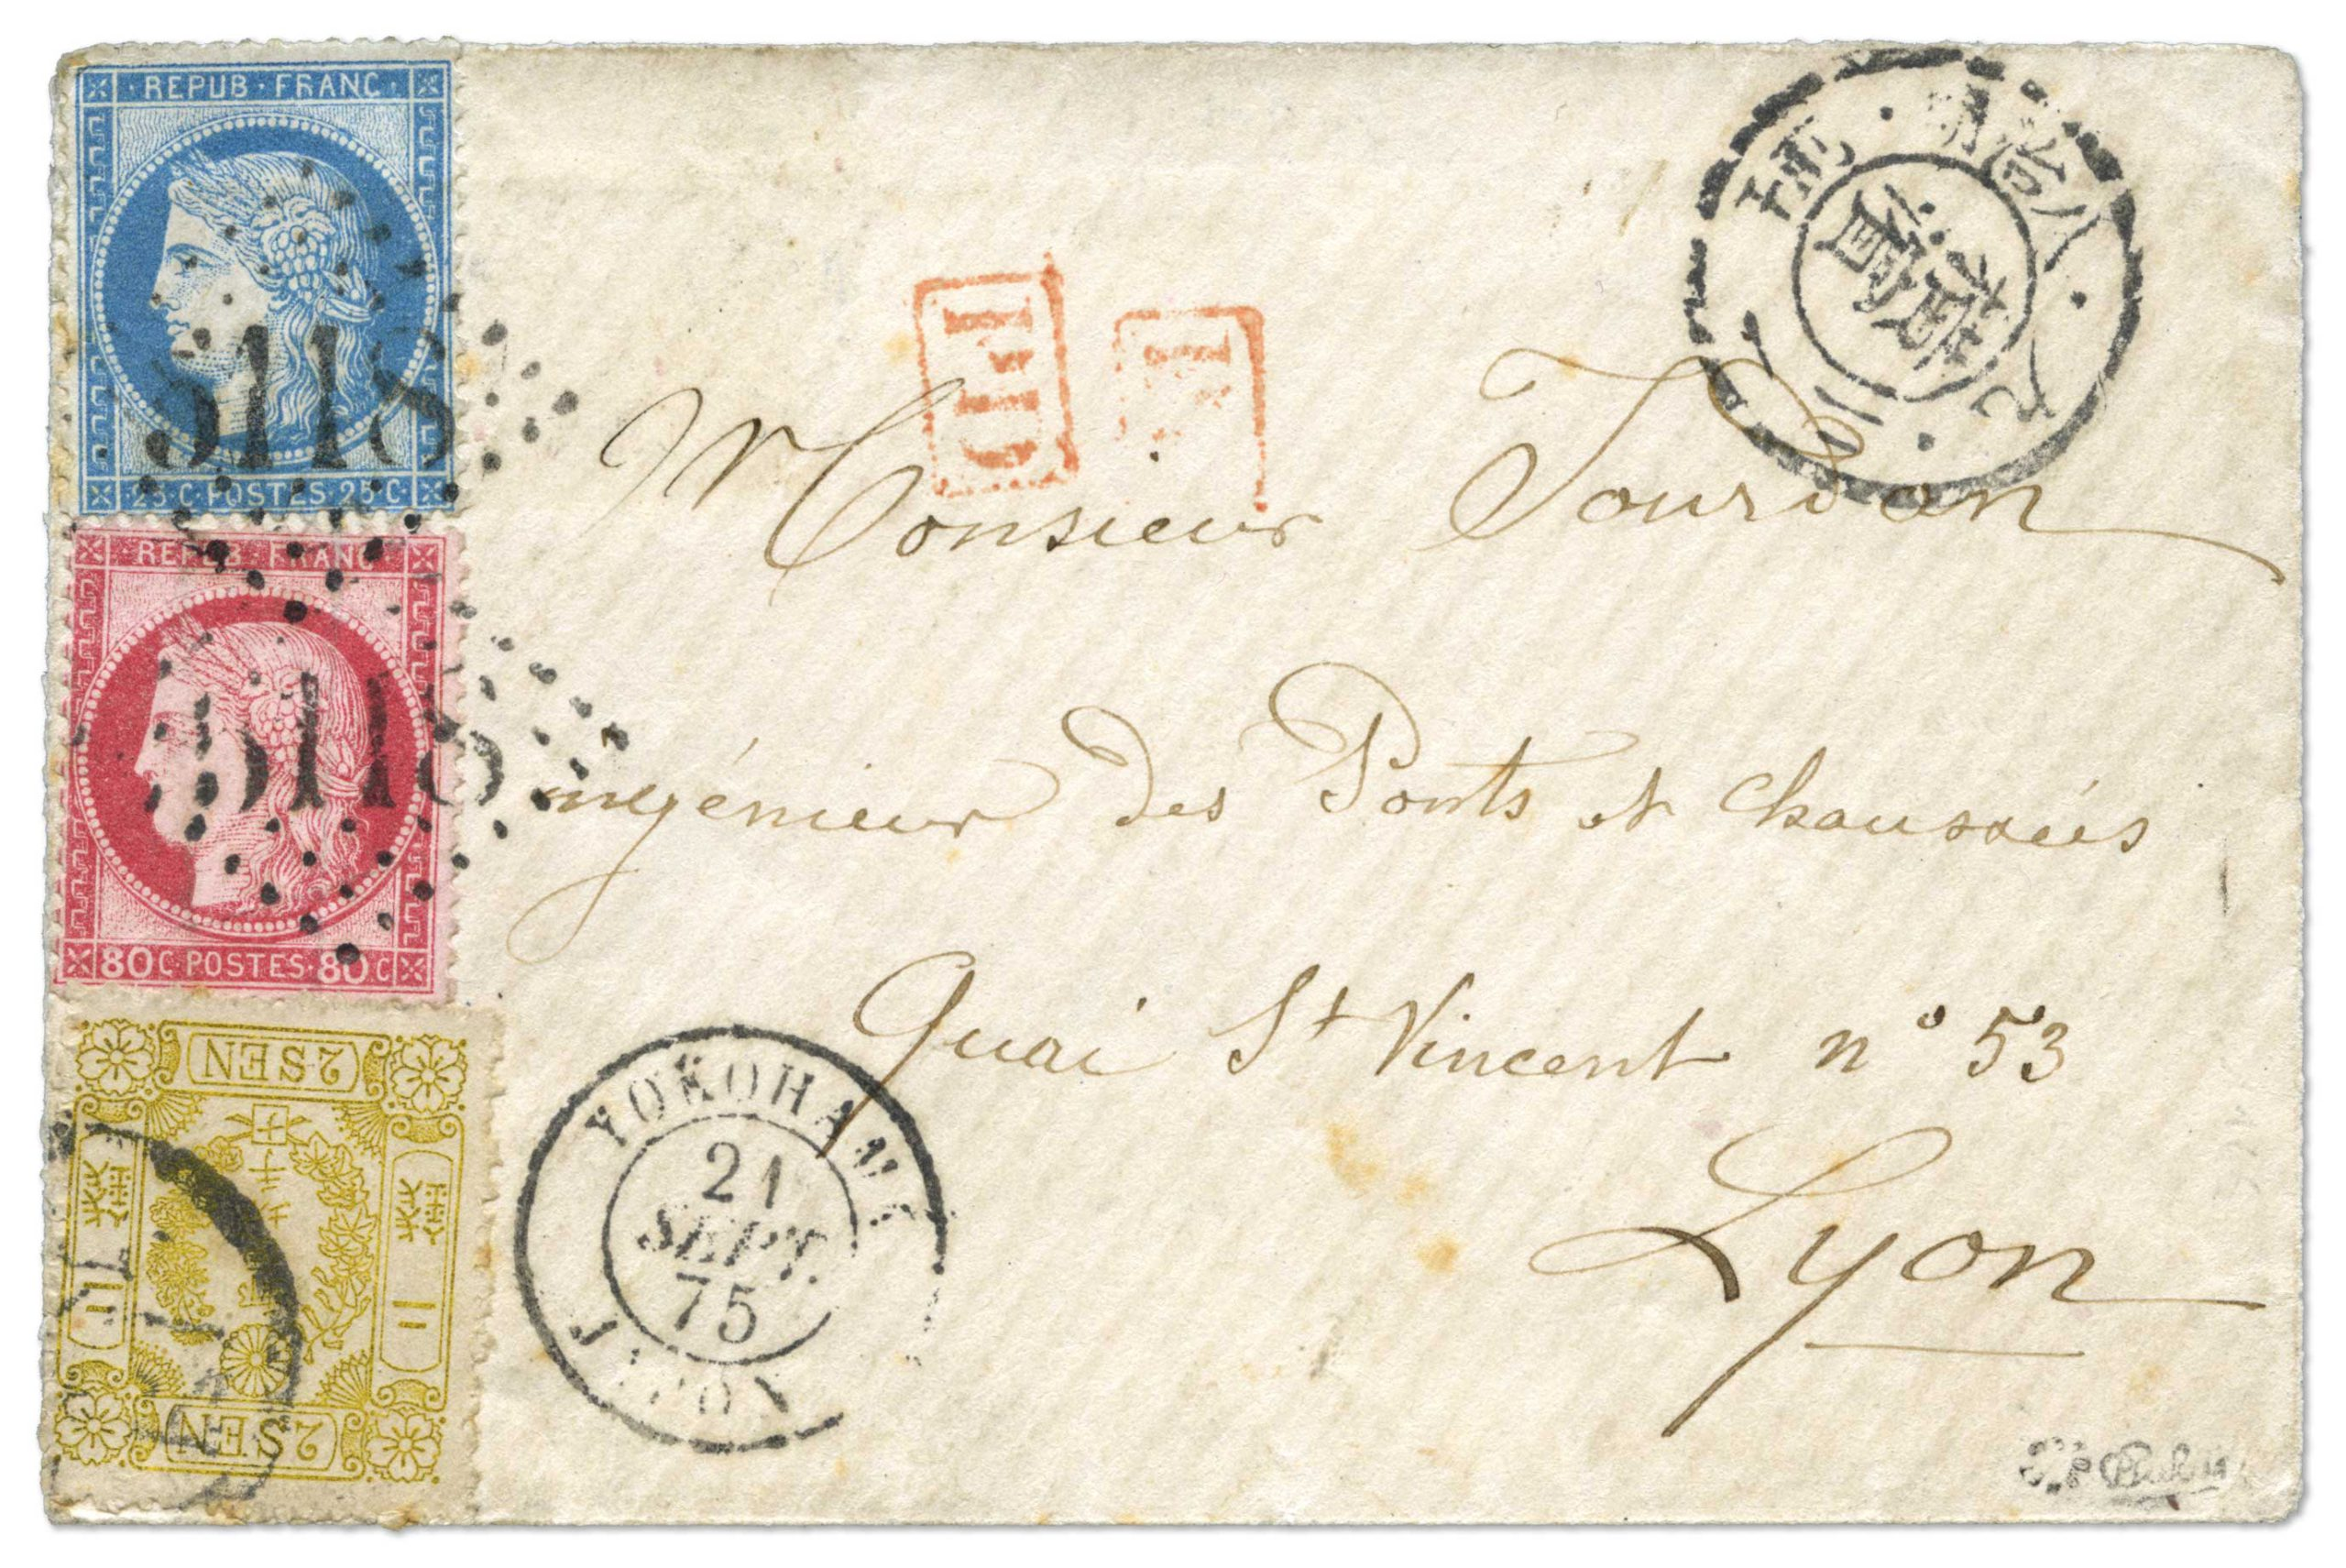 1875 French Military Mission envelope that unusually has a Japan 1874 2s with syllabic (Michel 20x, Scott 34) from plate 21, paying the single internal rate from Tokyo to Yokohama, and attractively used in combination with perforated French Cérès' 25c and 80c